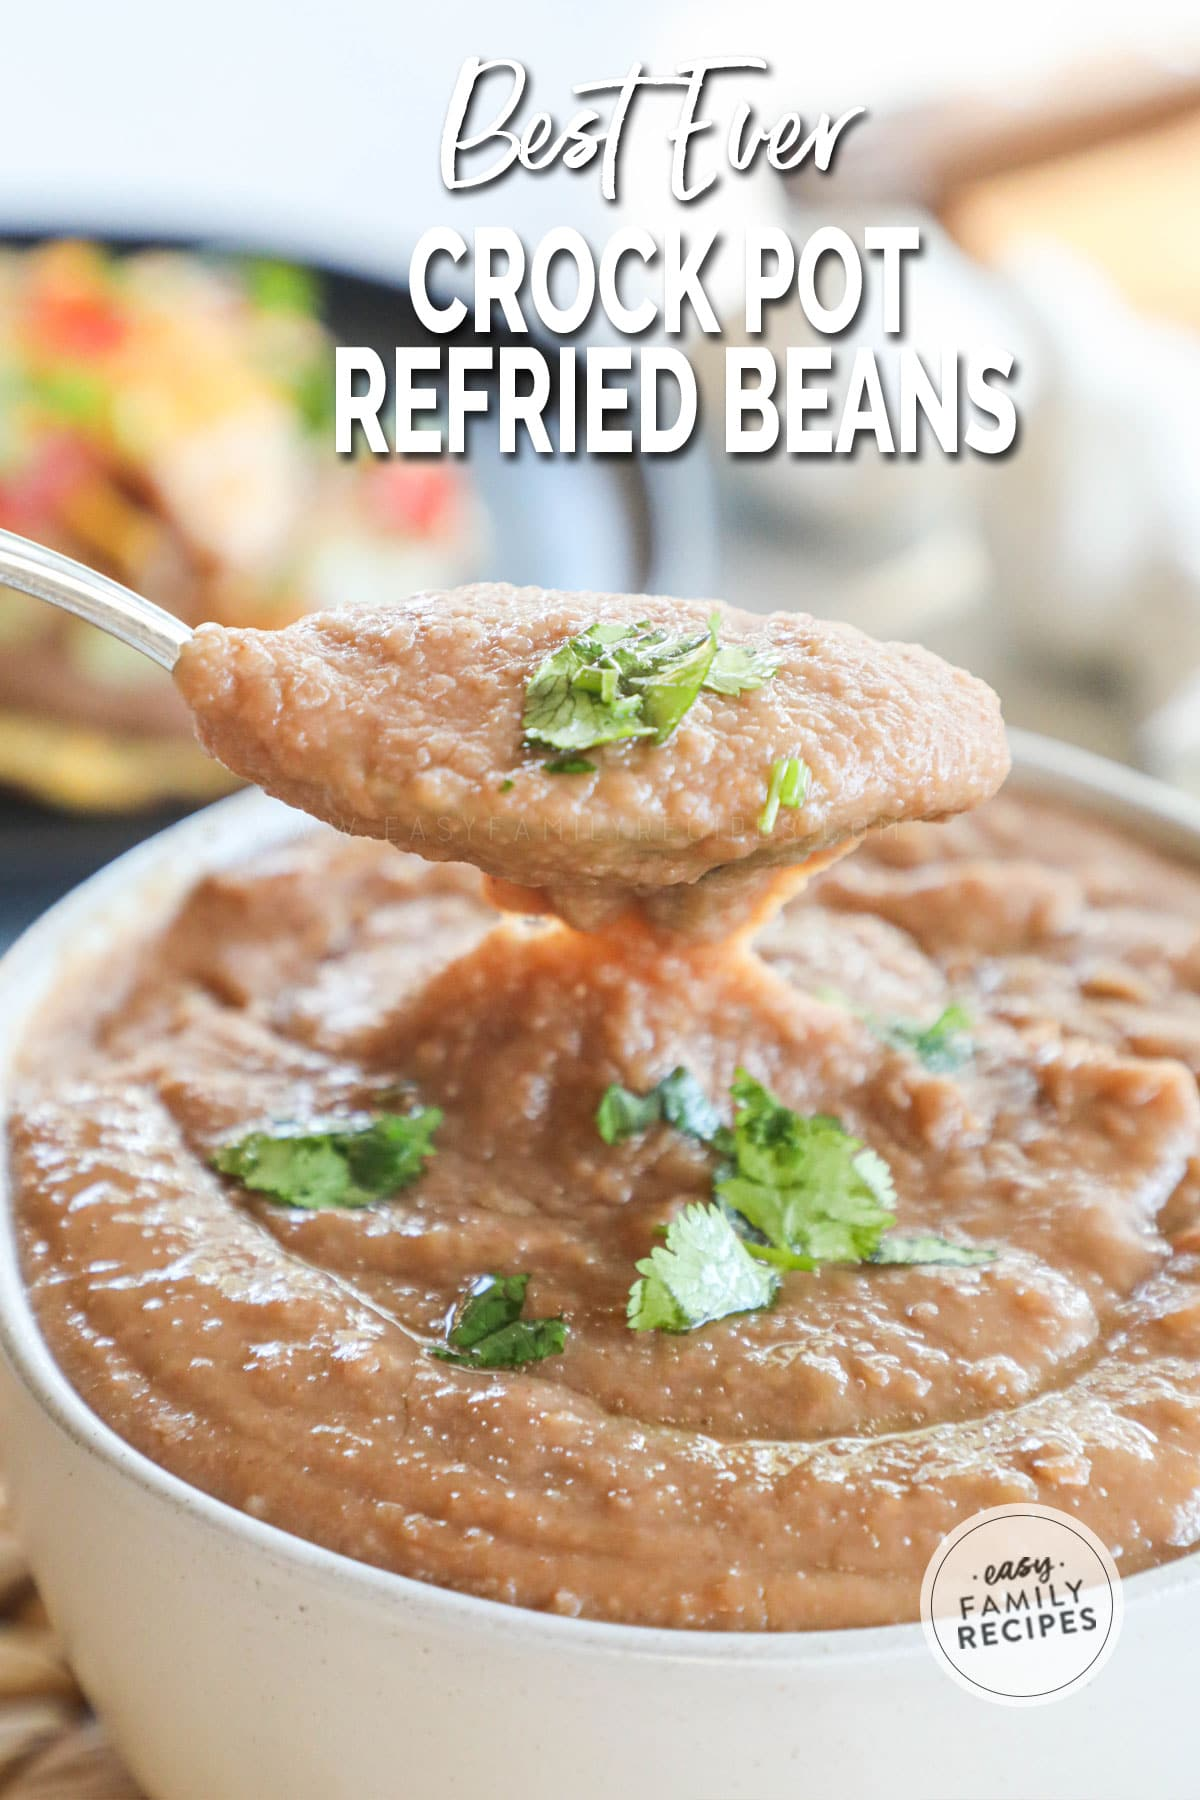 Lifting a spoon full of crock pot refried beans out of the serving bowl